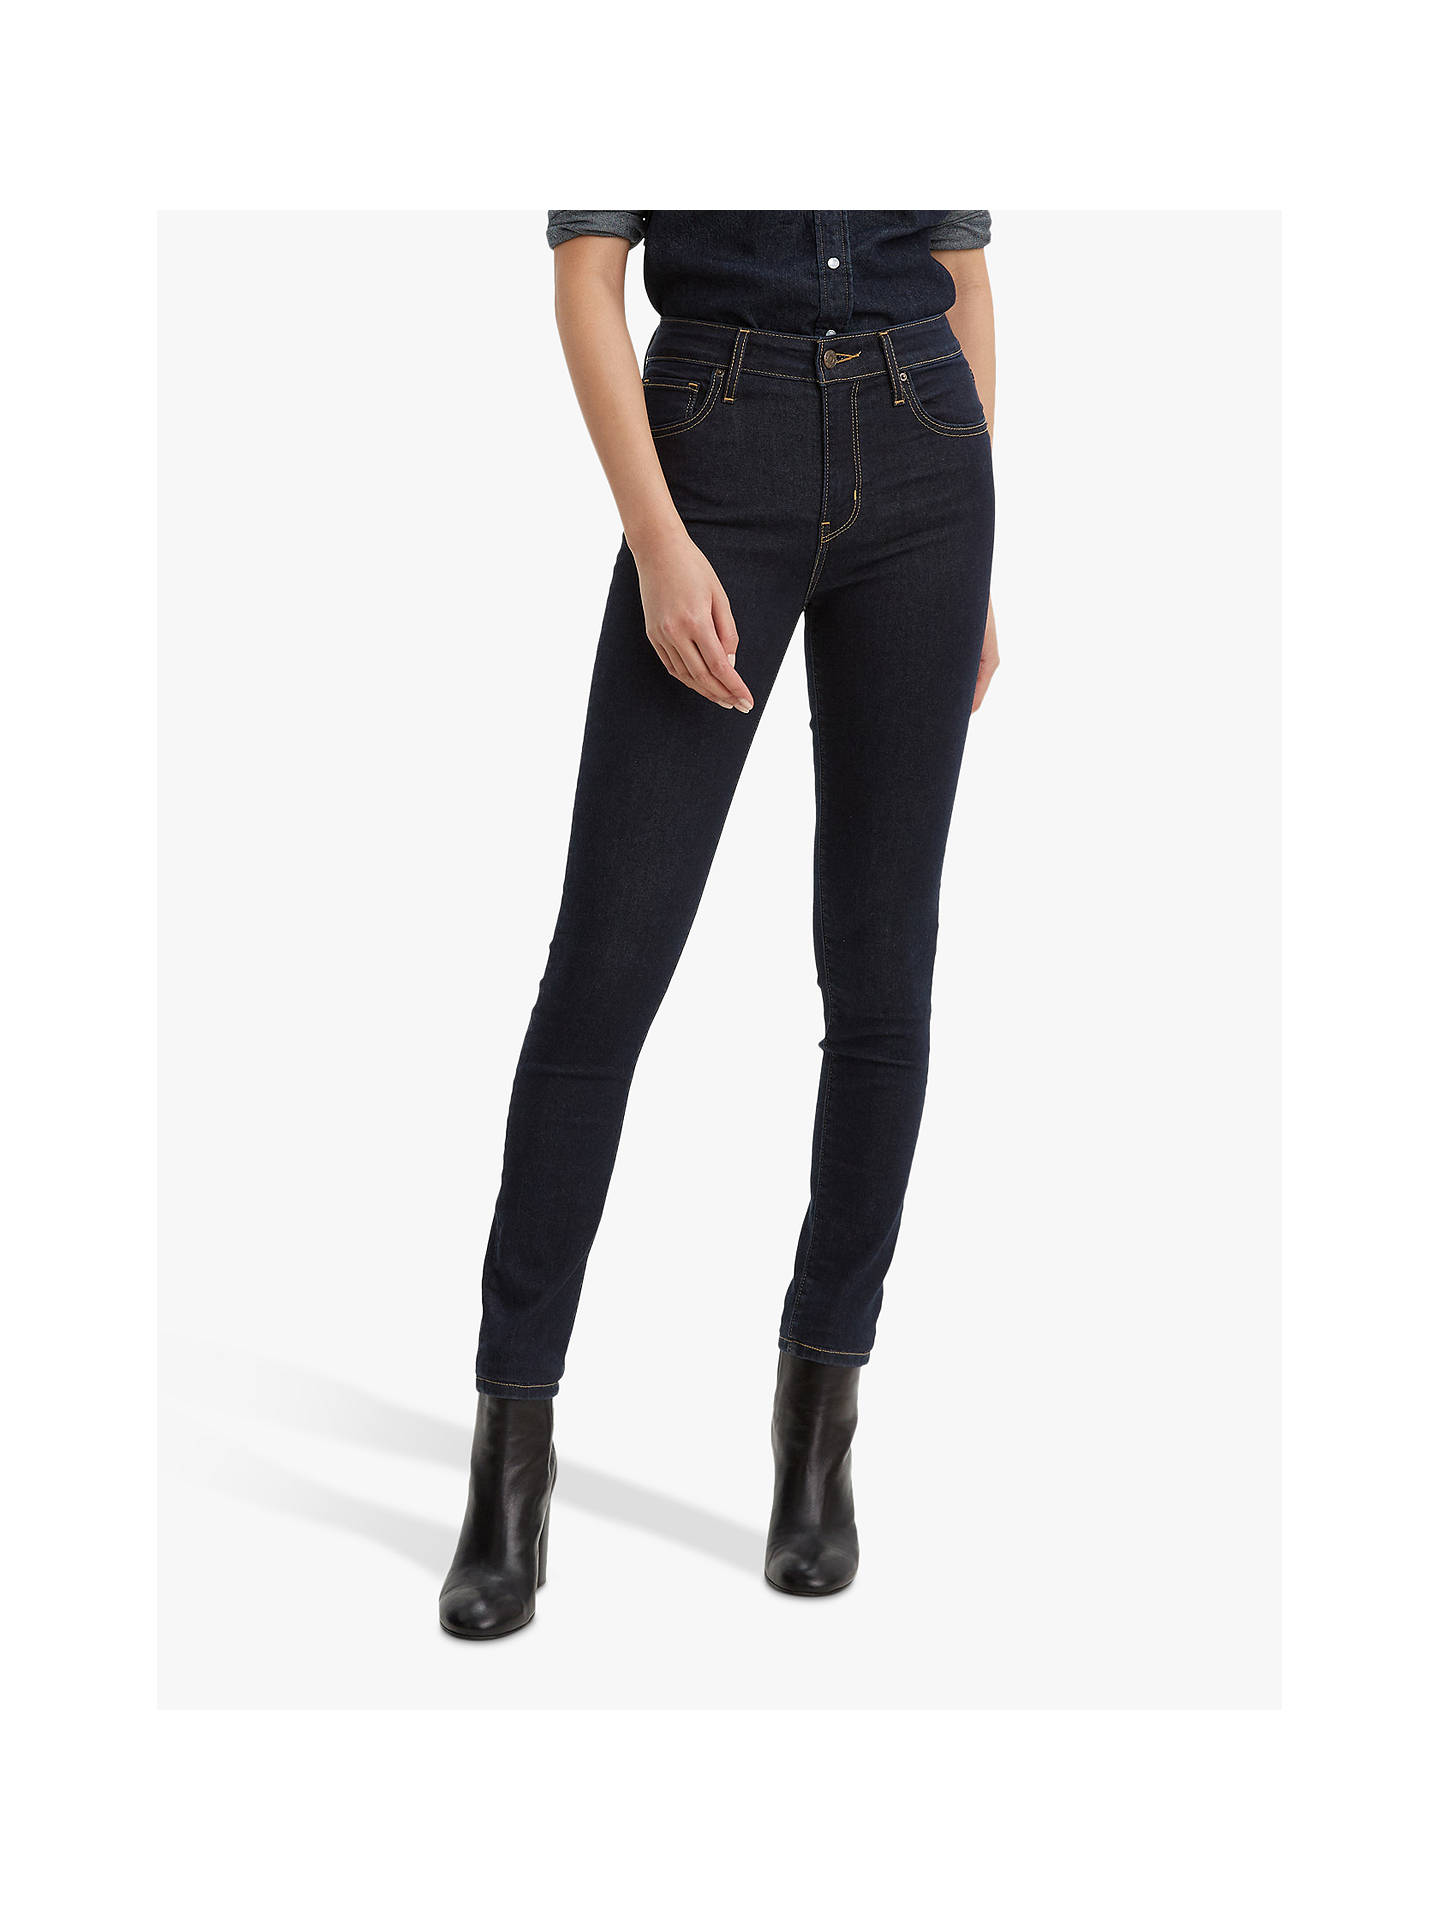 Buy Levi's 721 High Rise Skinny Jeans, To The Nine, W28/L30 Online at johnlewis.com